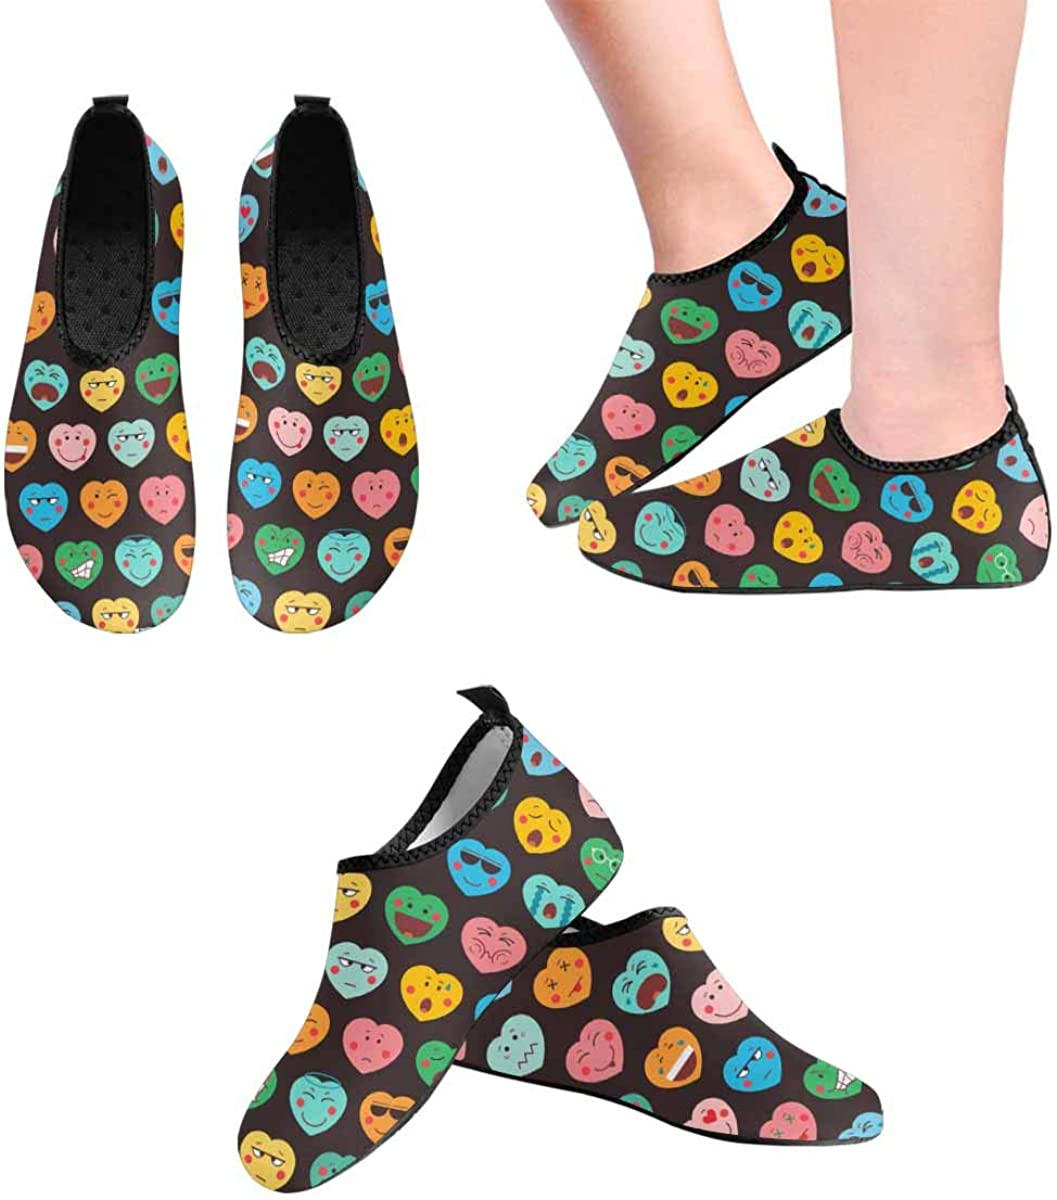 INTERESTPRINT Mens Quick Dry Barefoot Aqua Shoes Cute Emoticon Hearts Barefoot Water Sports Shoes Water Socks